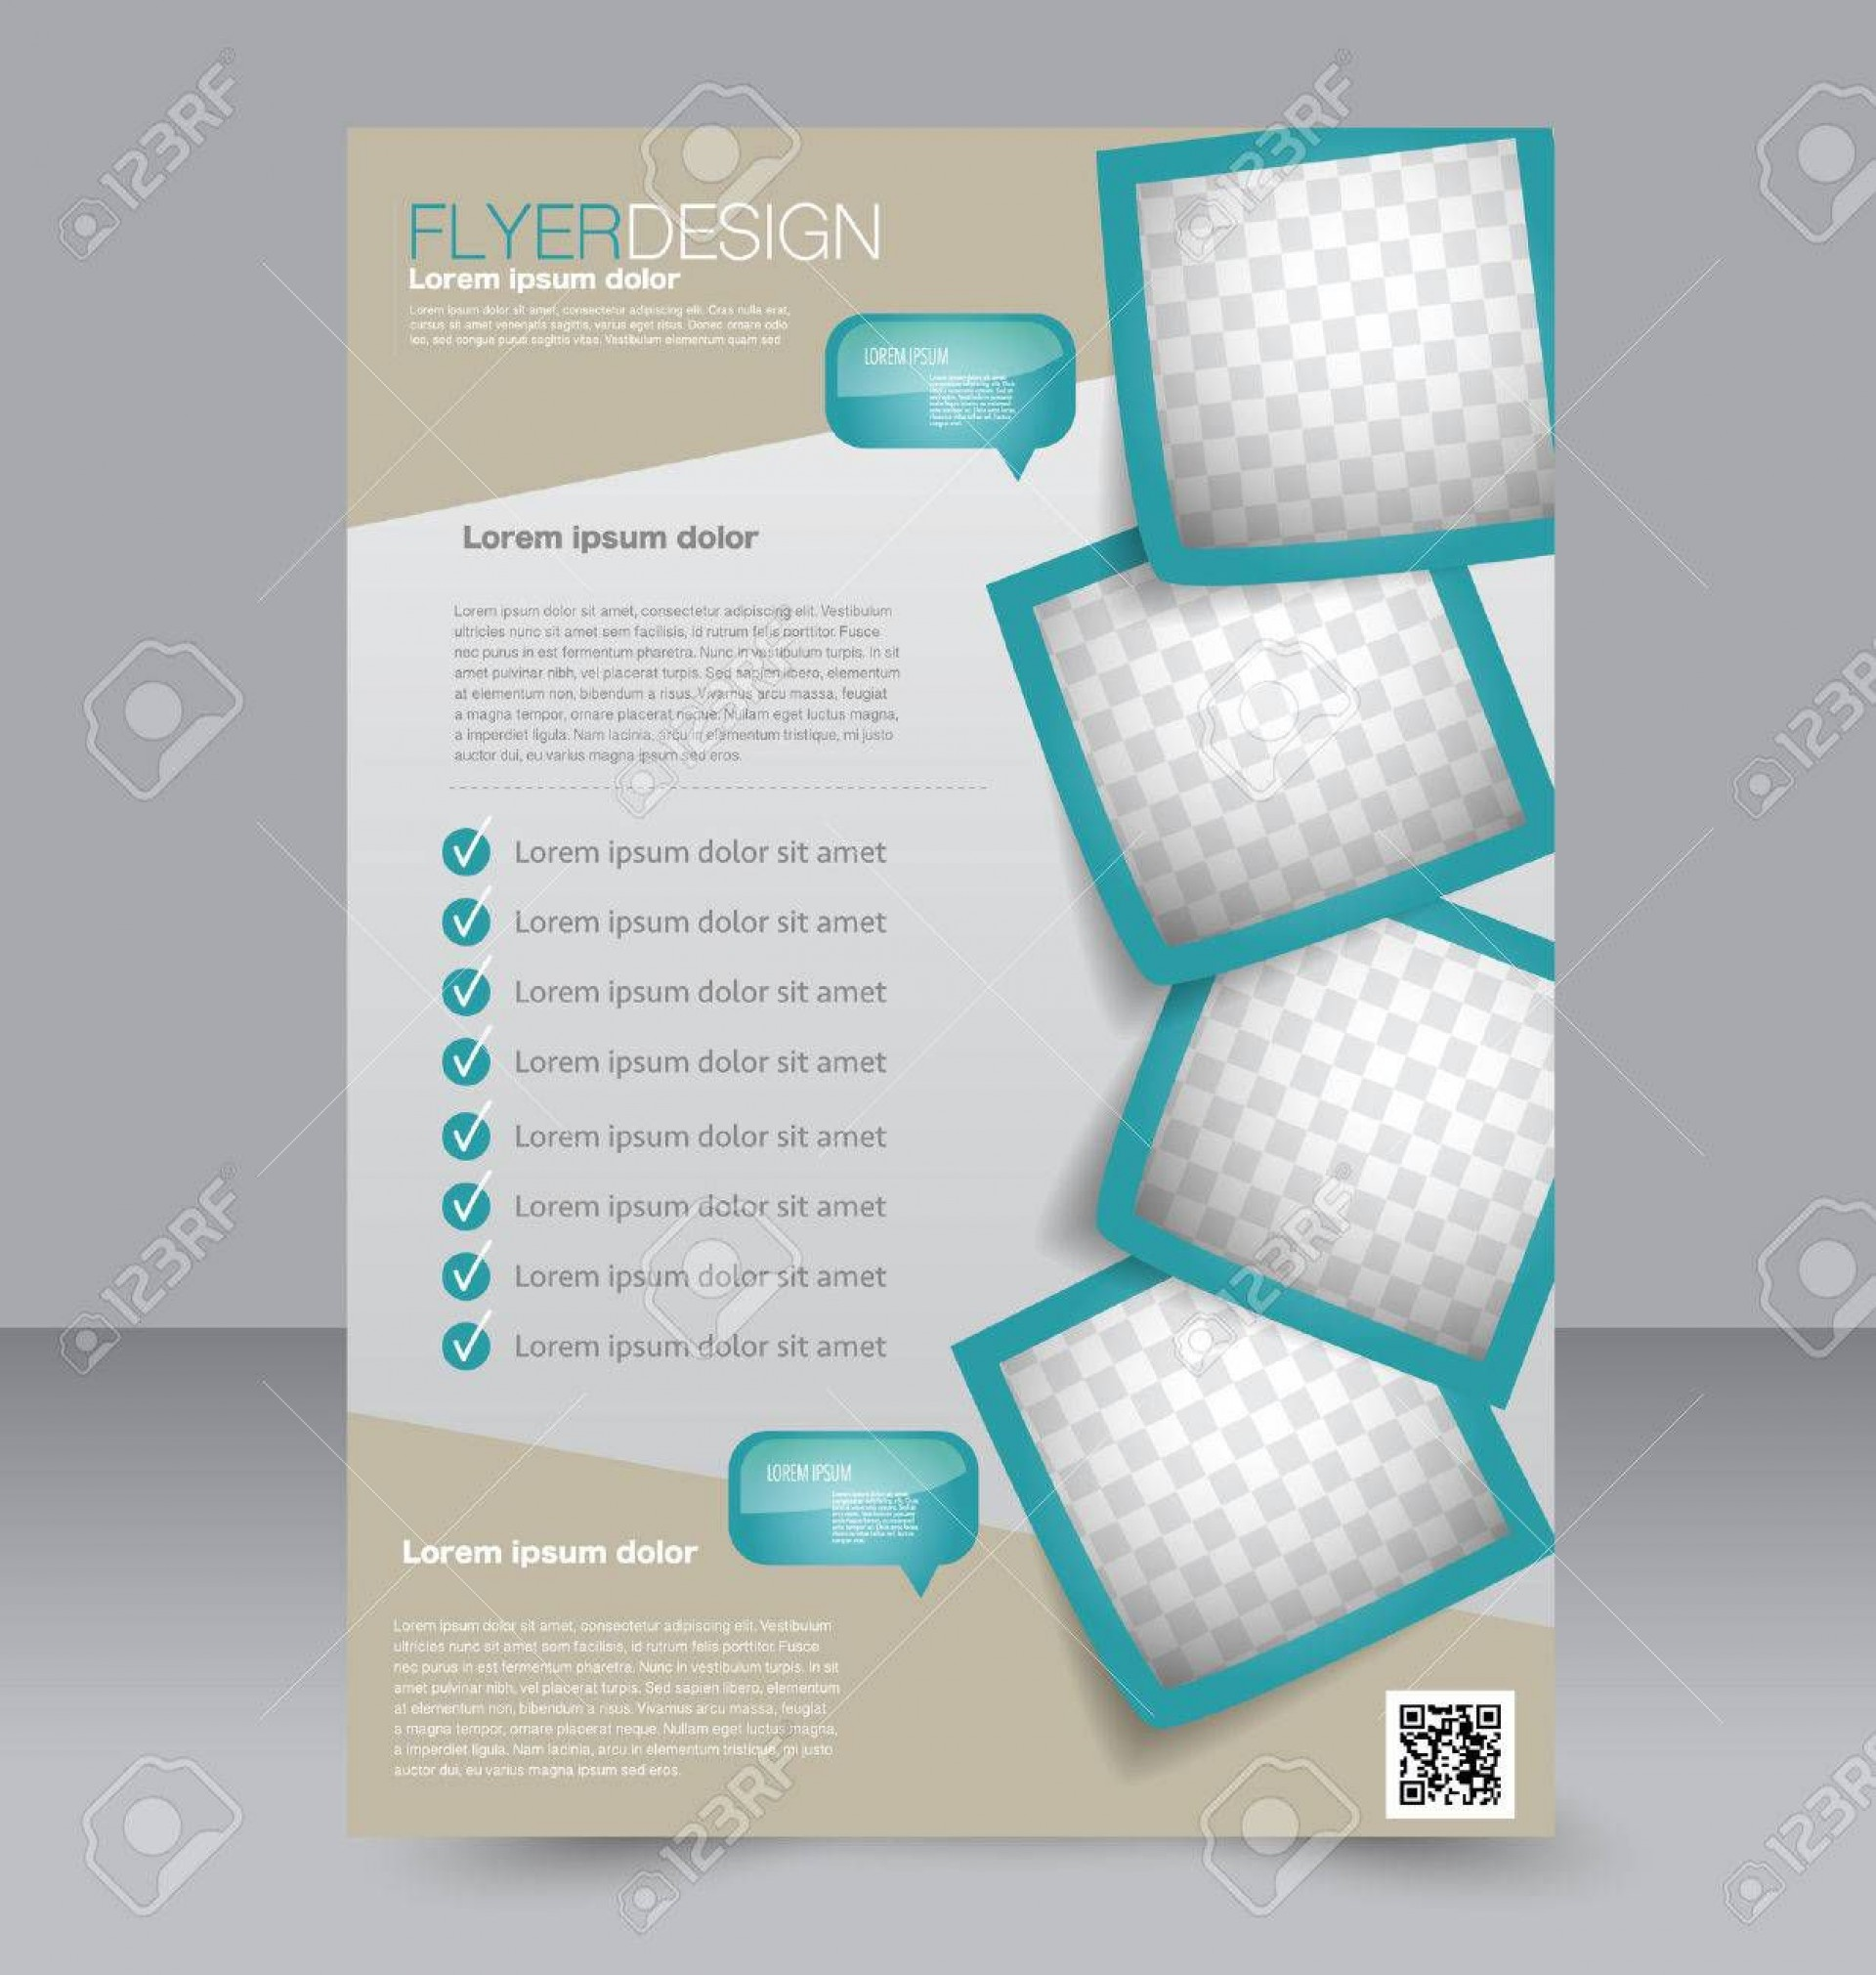 005 Beautiful Free Editable Flyer Template Example  Busines Fundraising1920